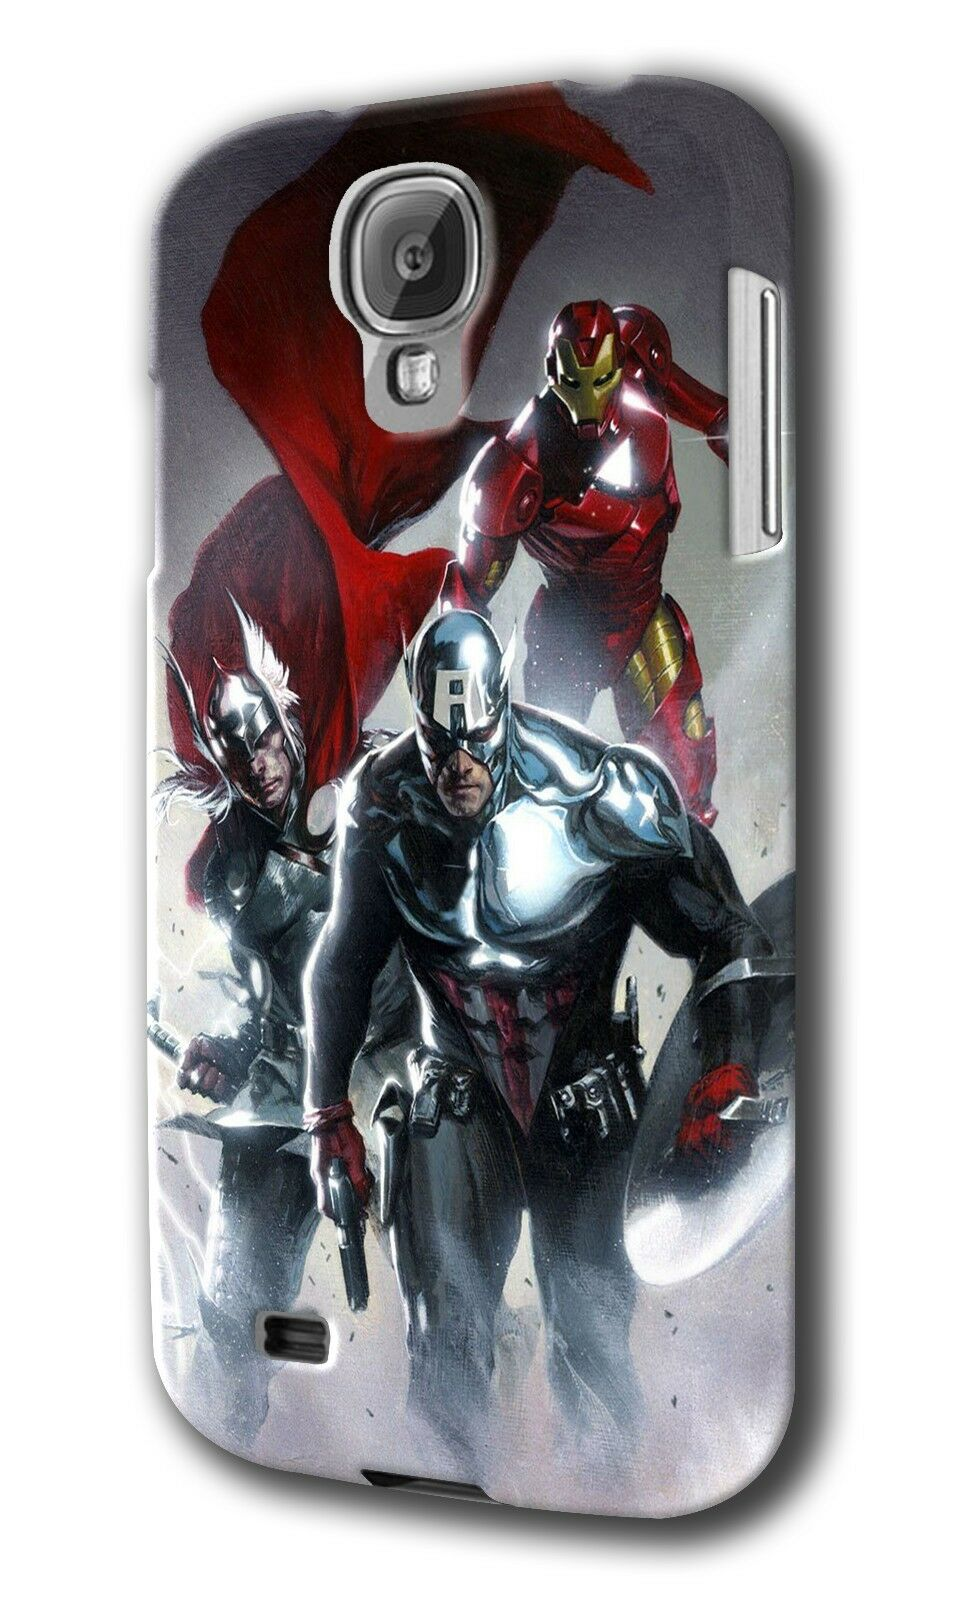 Captain America Avengers Samsung Galaxy S4 5 6 7 8 Edge Note 3 4 5 7 + Plus Case